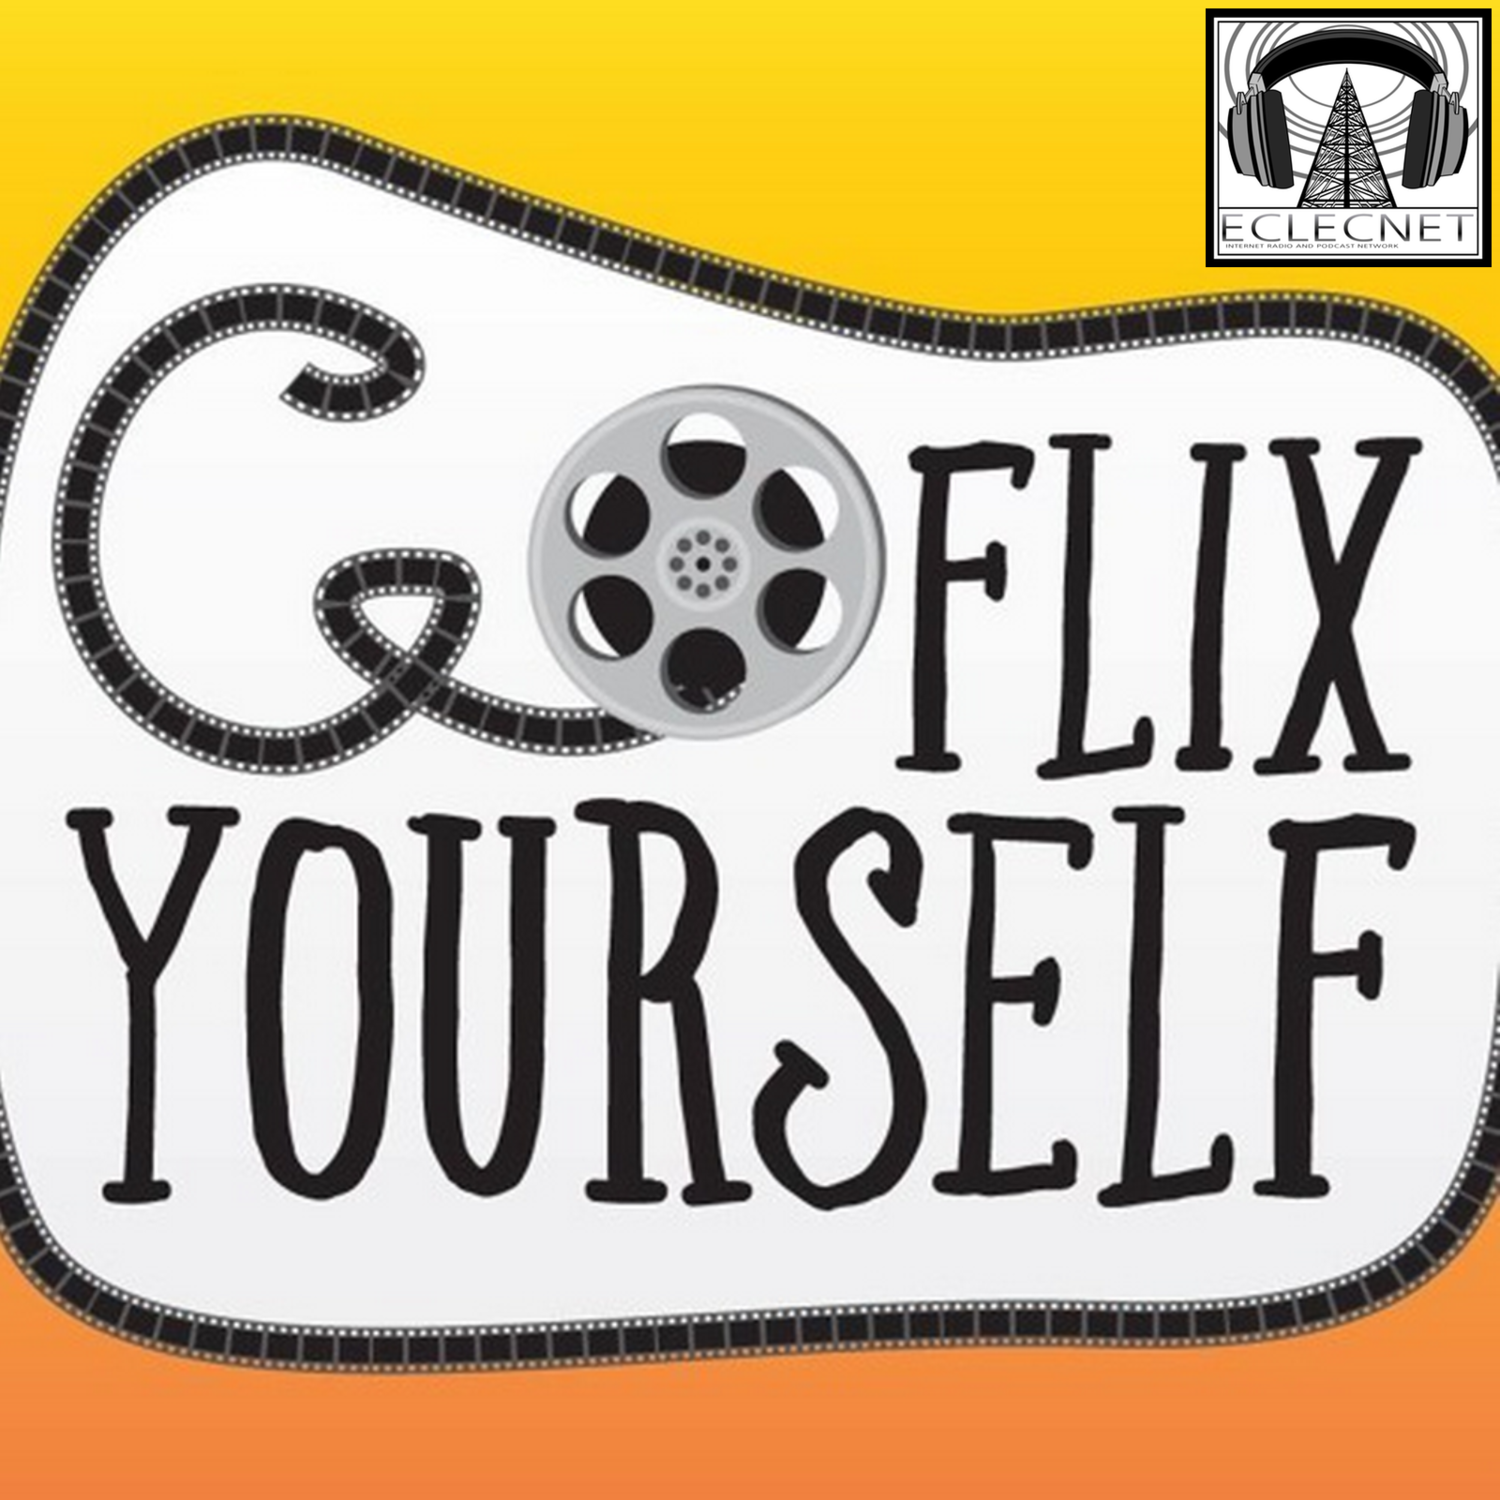 Go Flix Yourself - Eclecnet